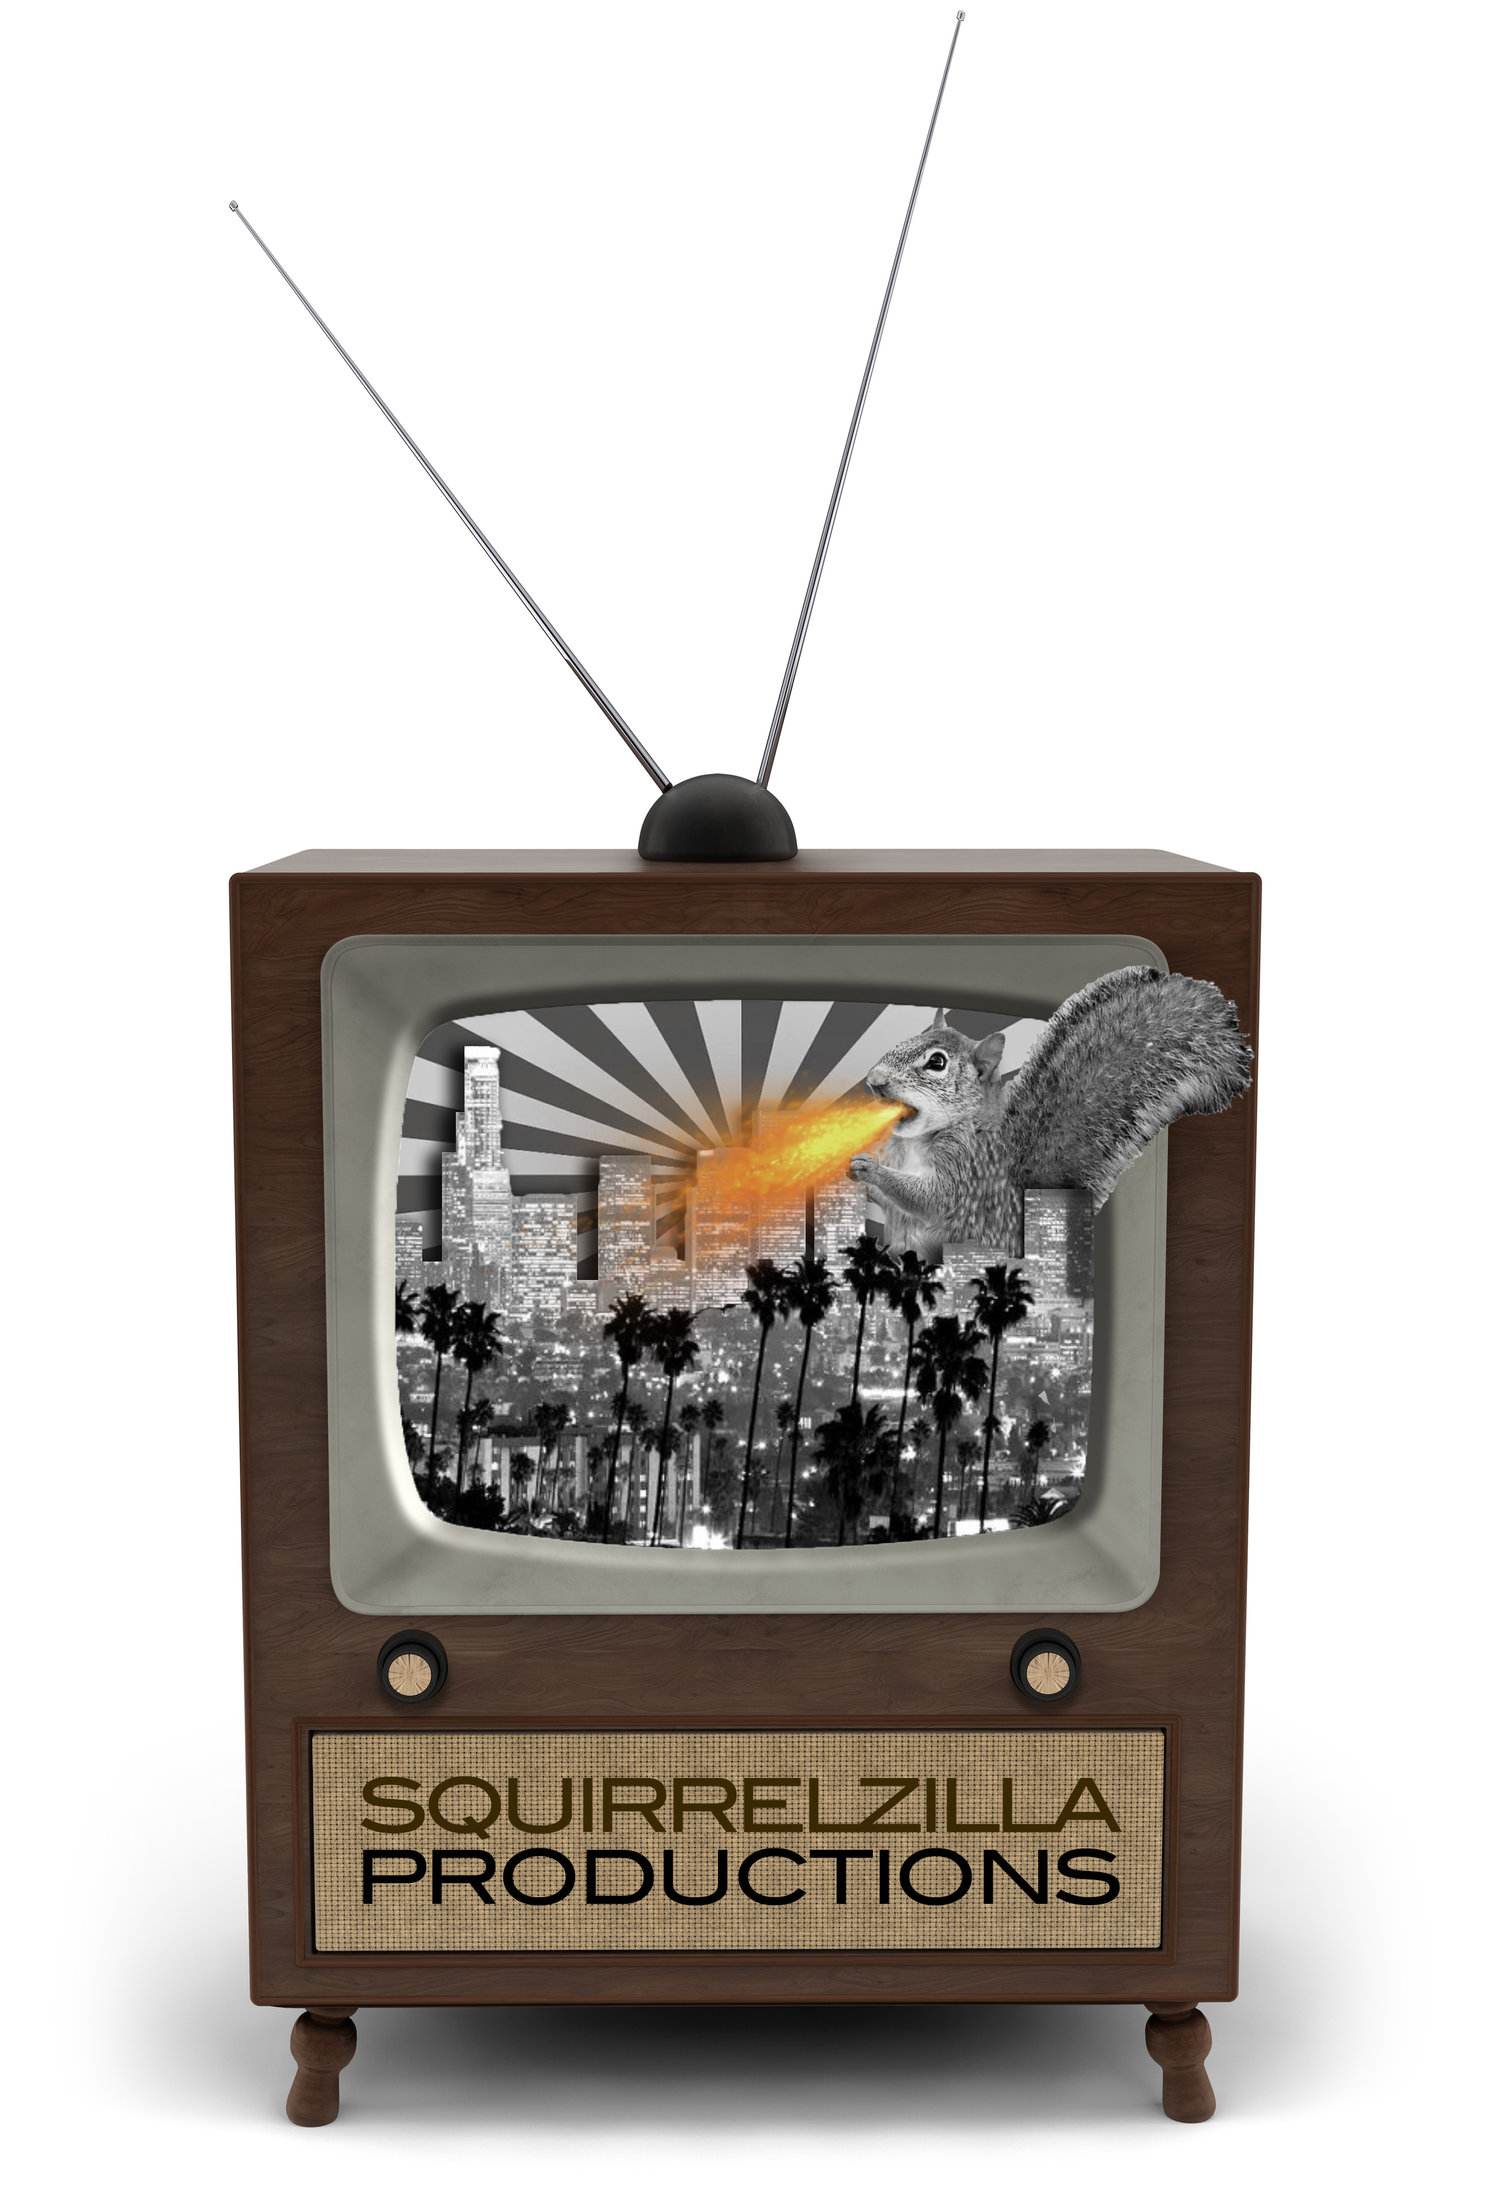 SQUIRRELZILLA Productions